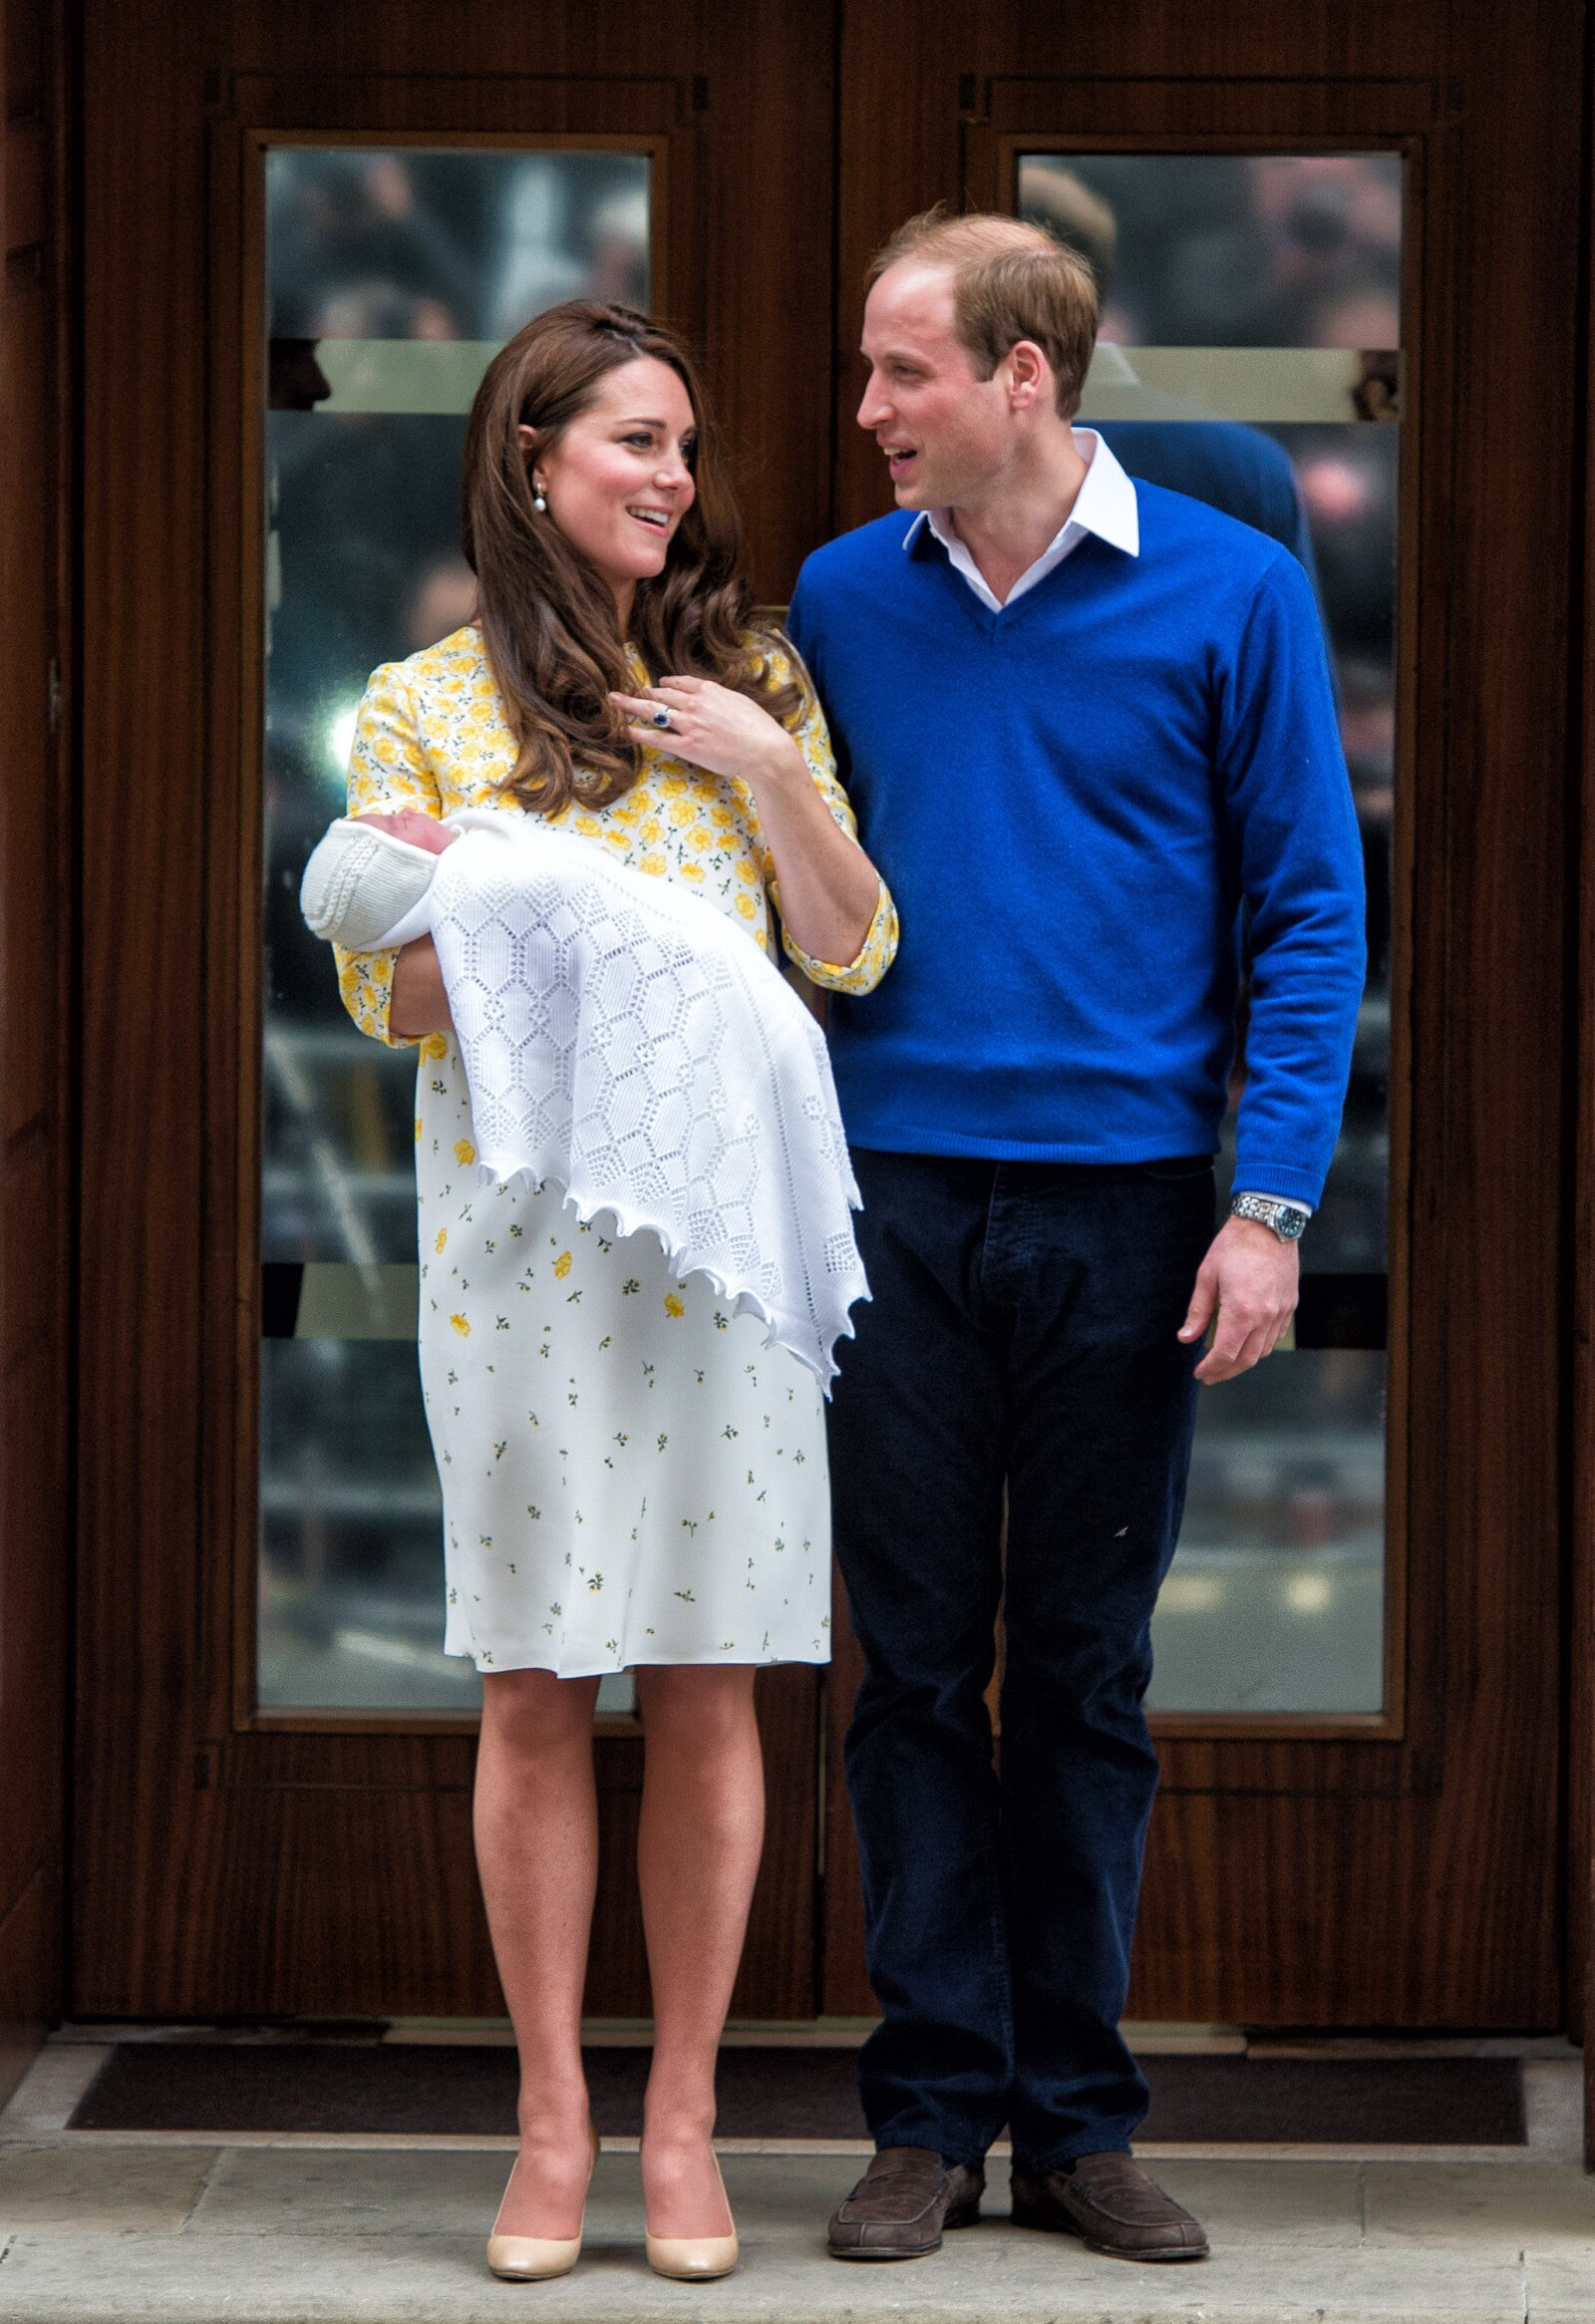 The Duke And Duchess Of Cambridge Depart The Lindo Wing With Thier Second Child